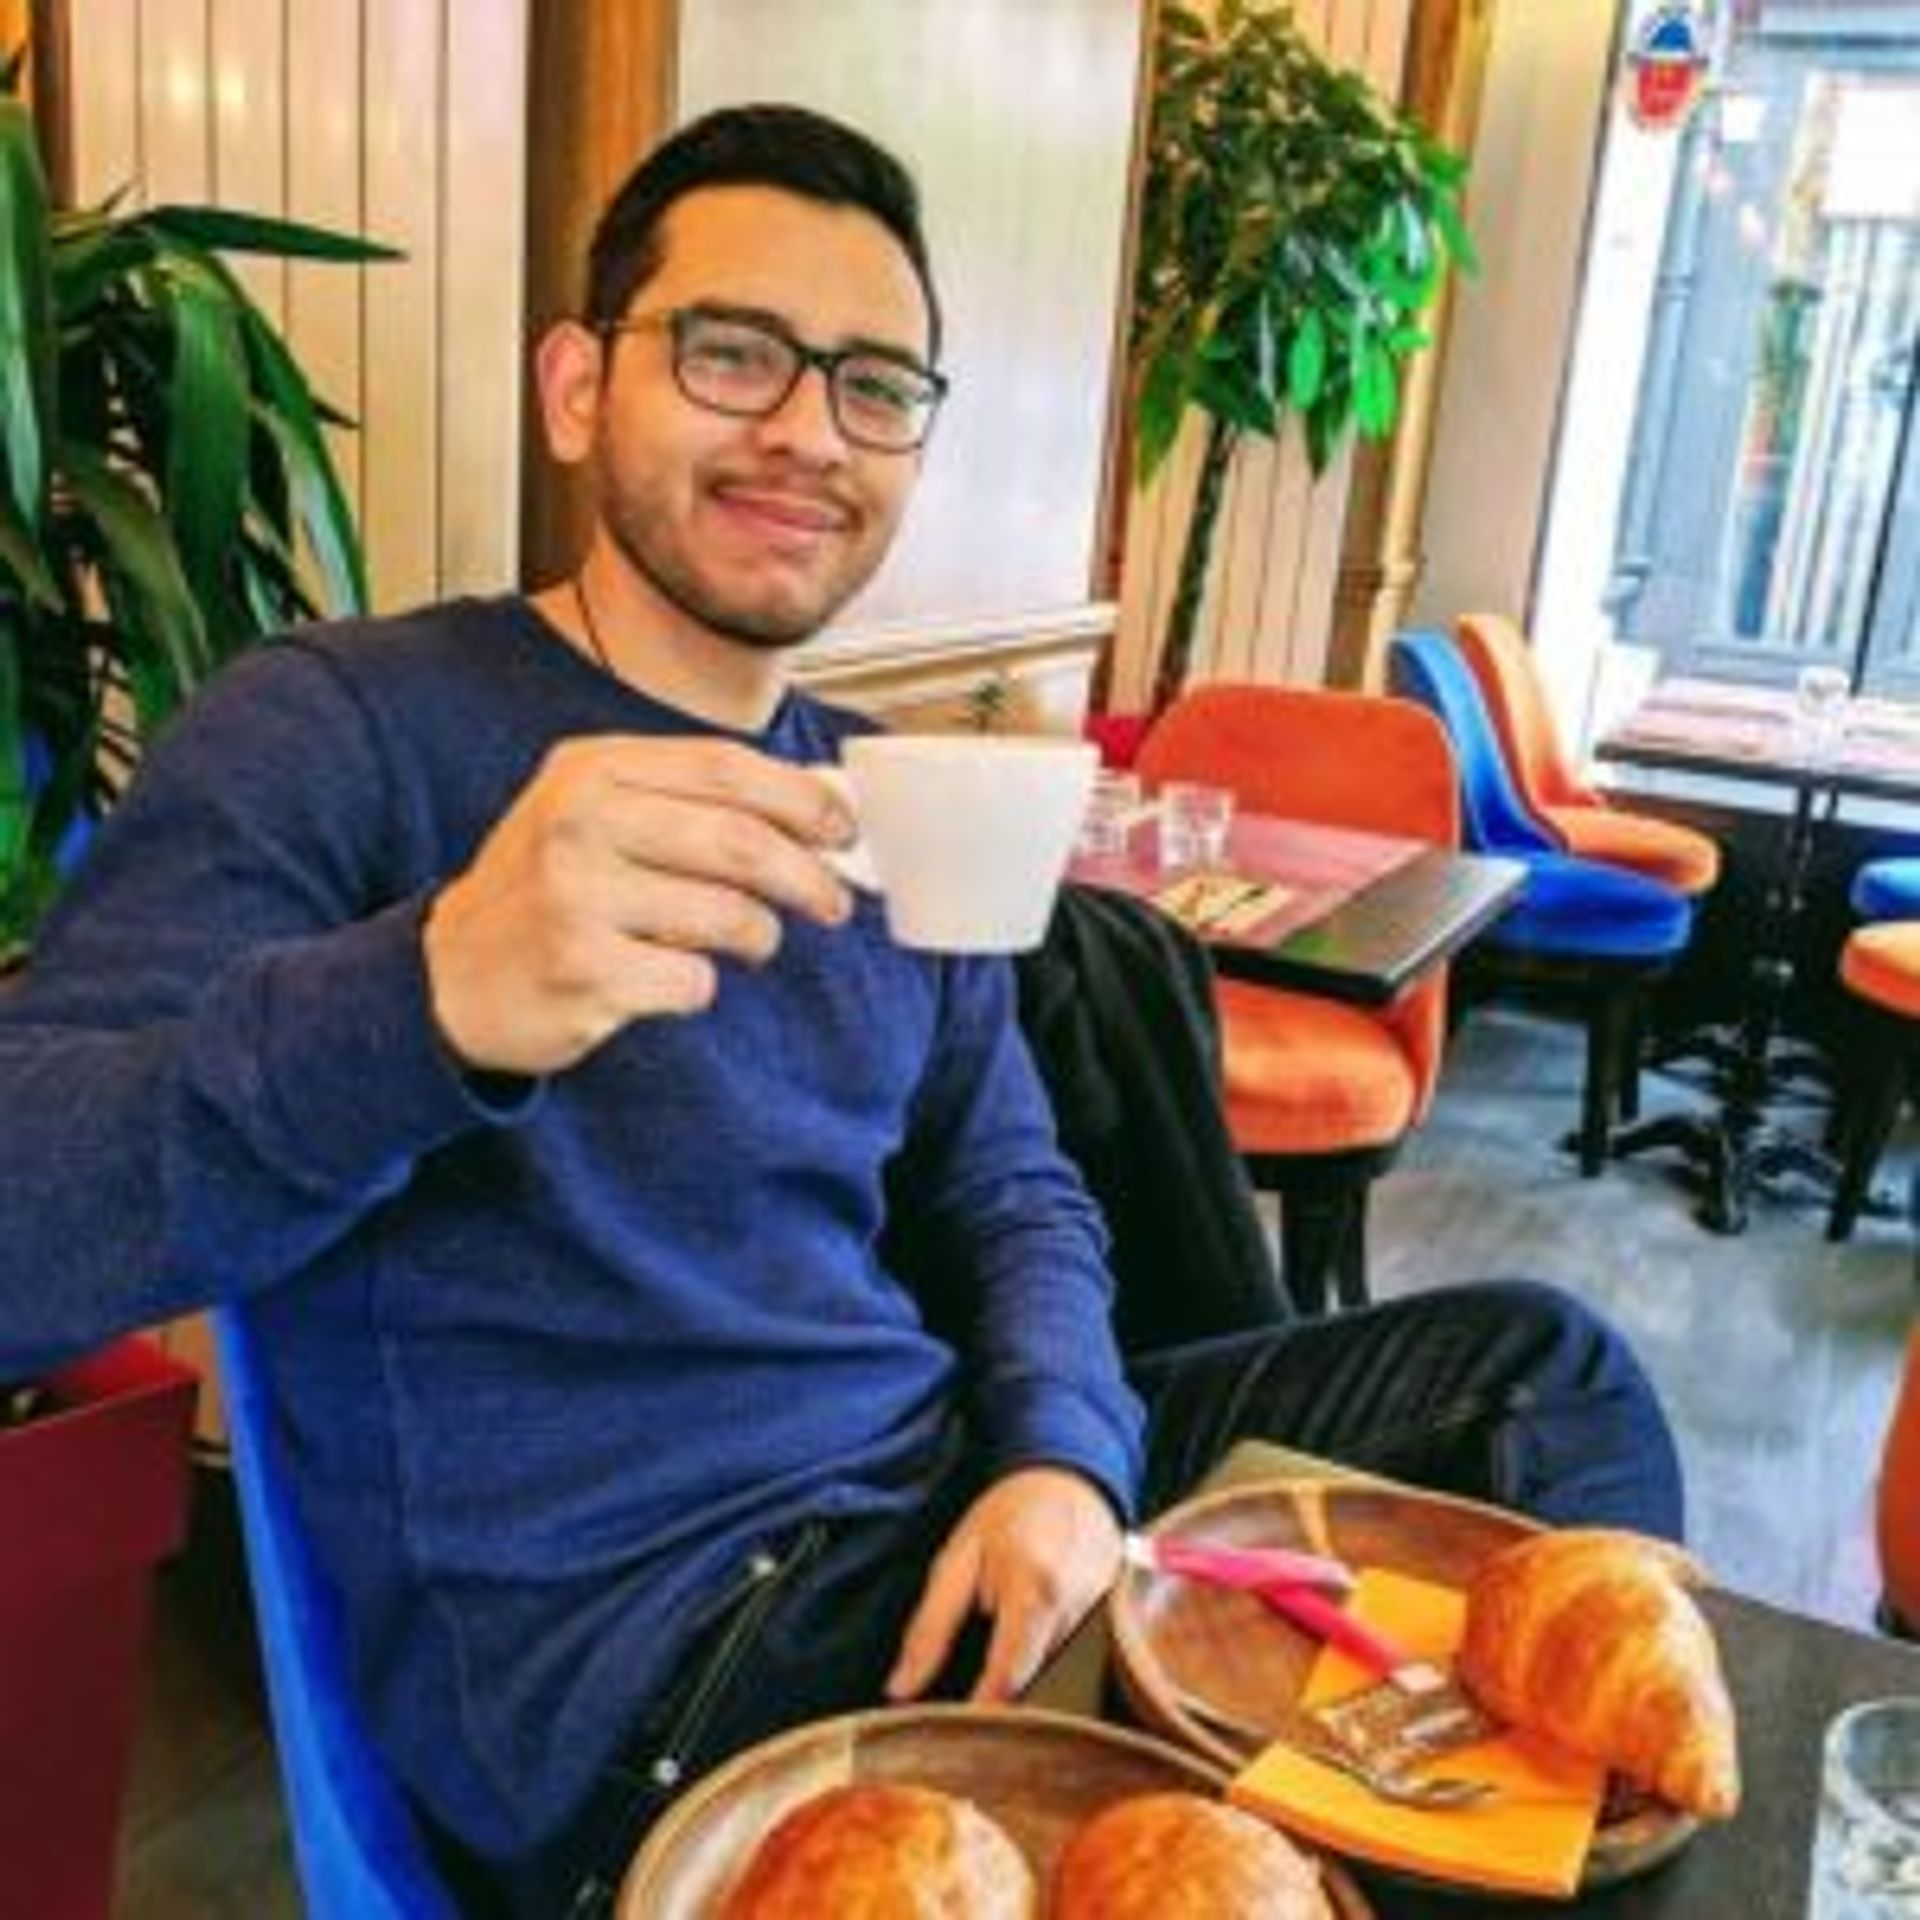 Sergio drinking coffee and pastries in a cafe.